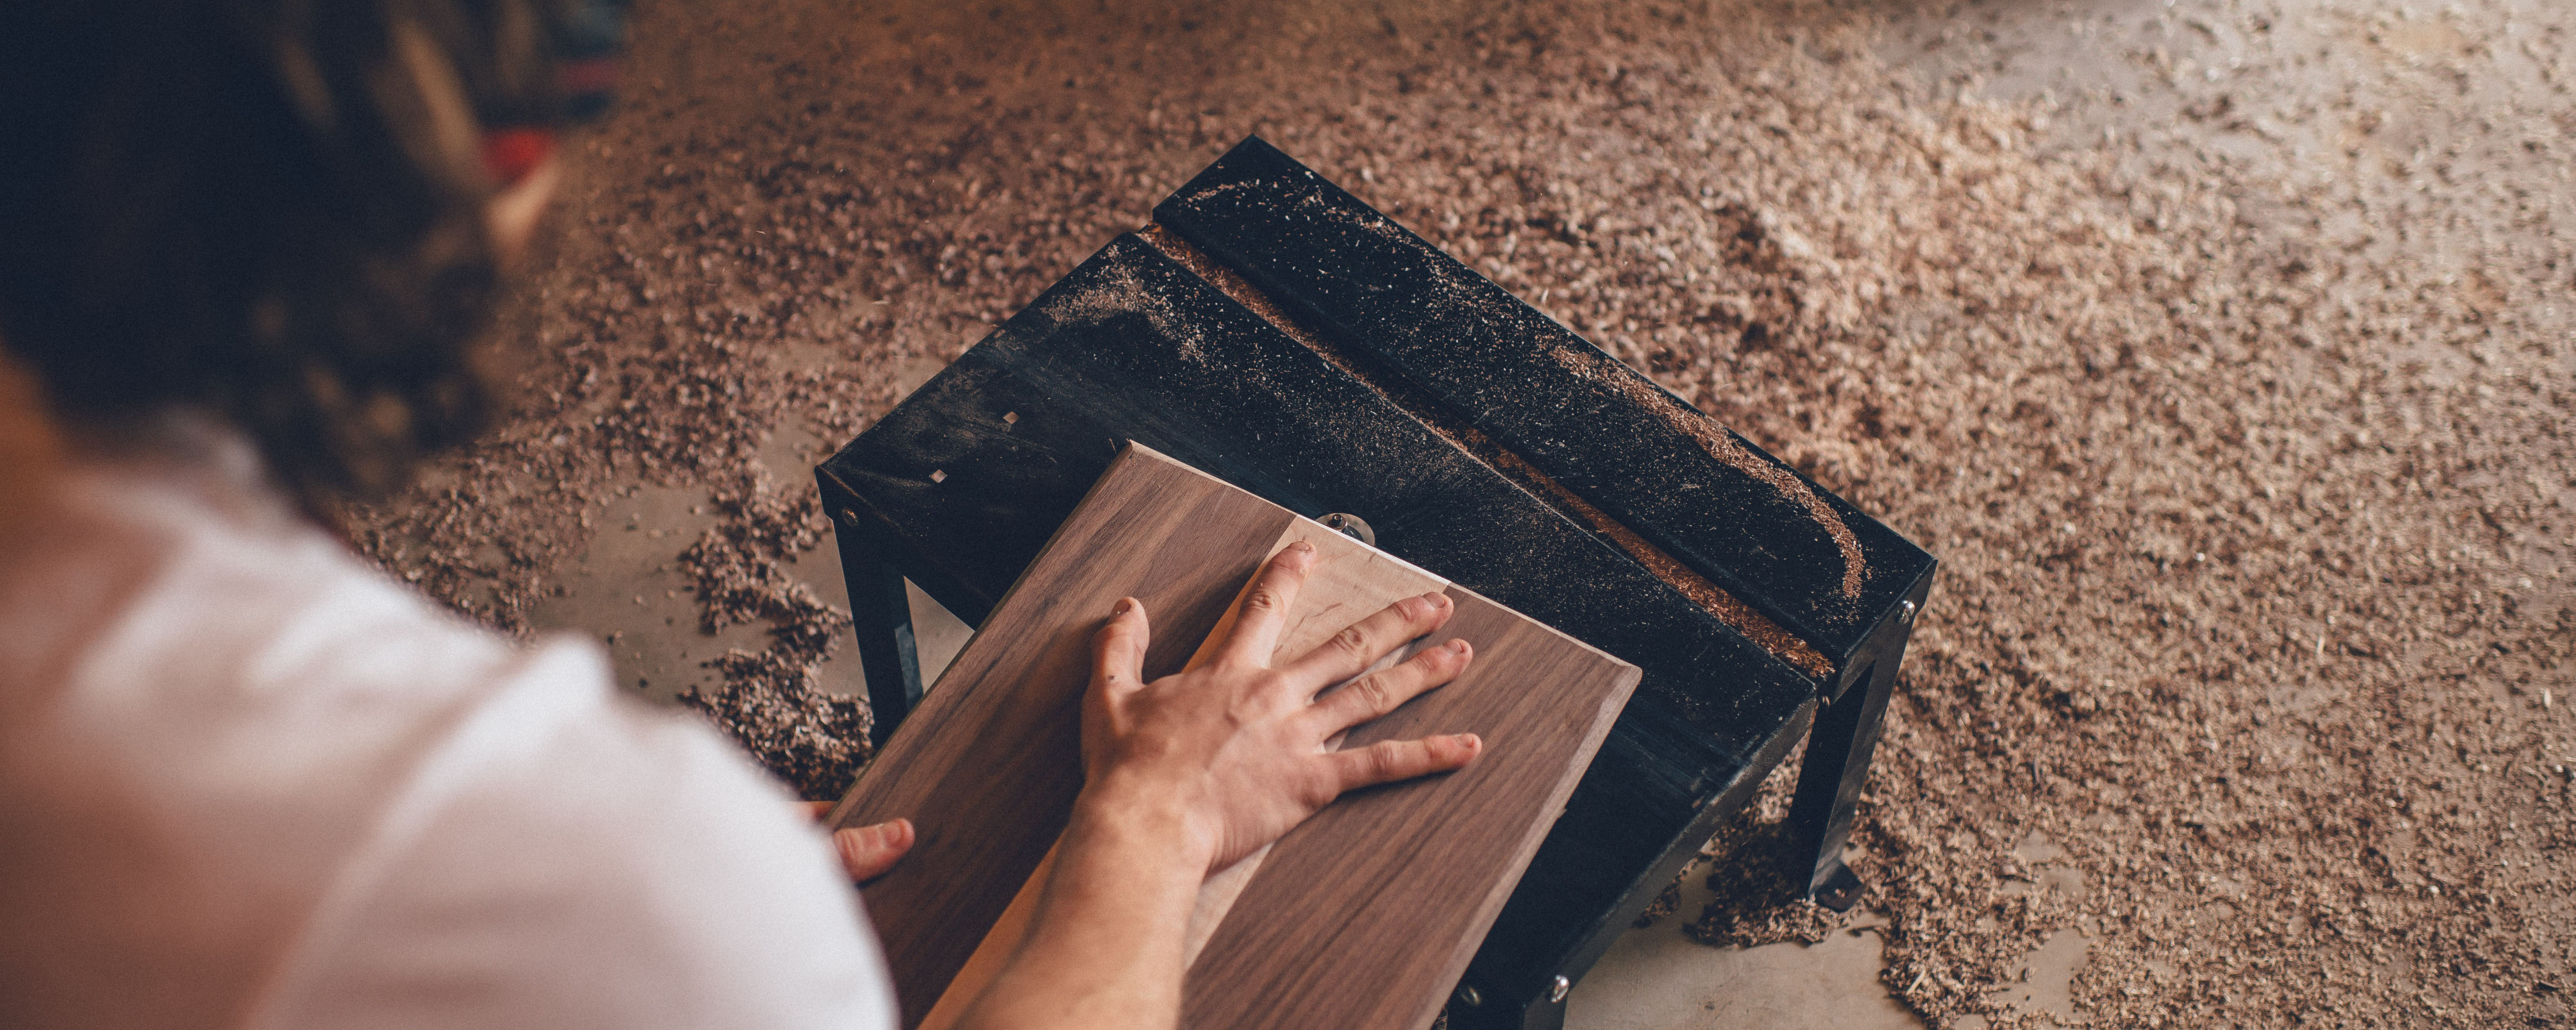 How much does it cost to hire a carpenter? | Service com au